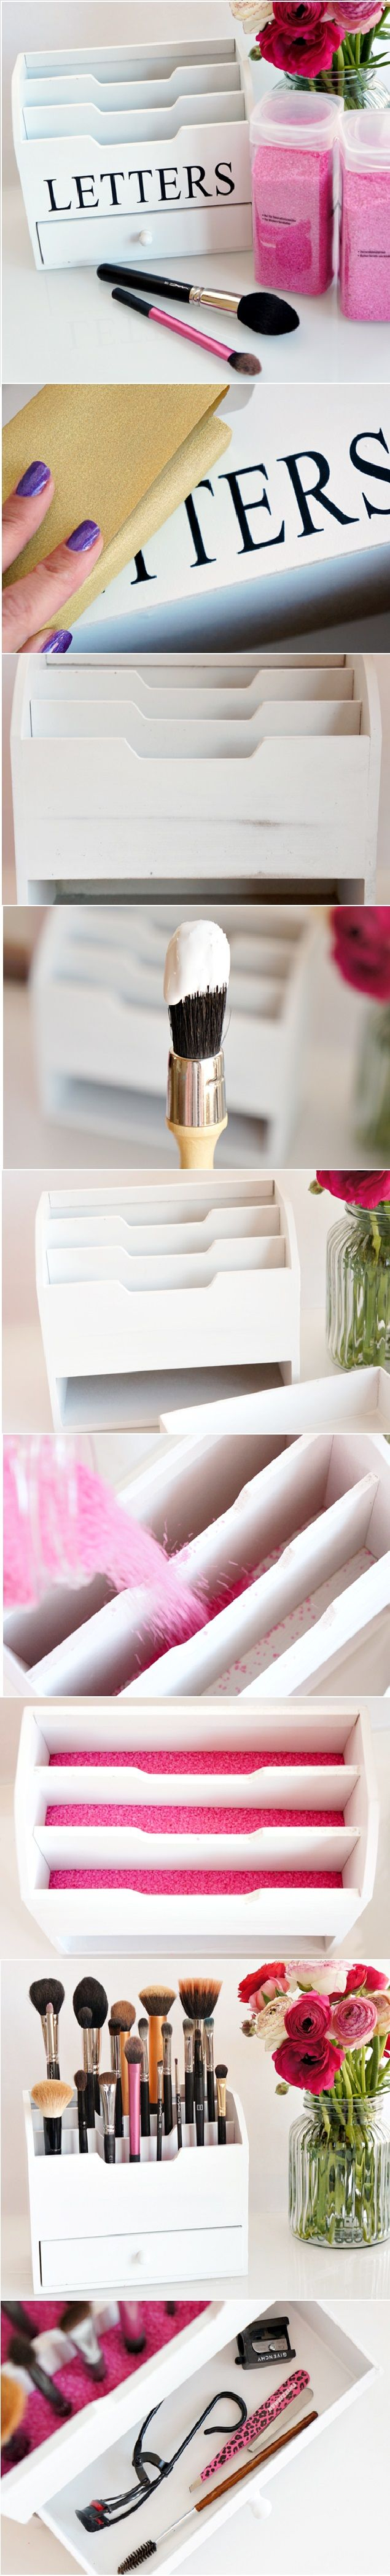 best diy projects images on pinterest creative gifts future